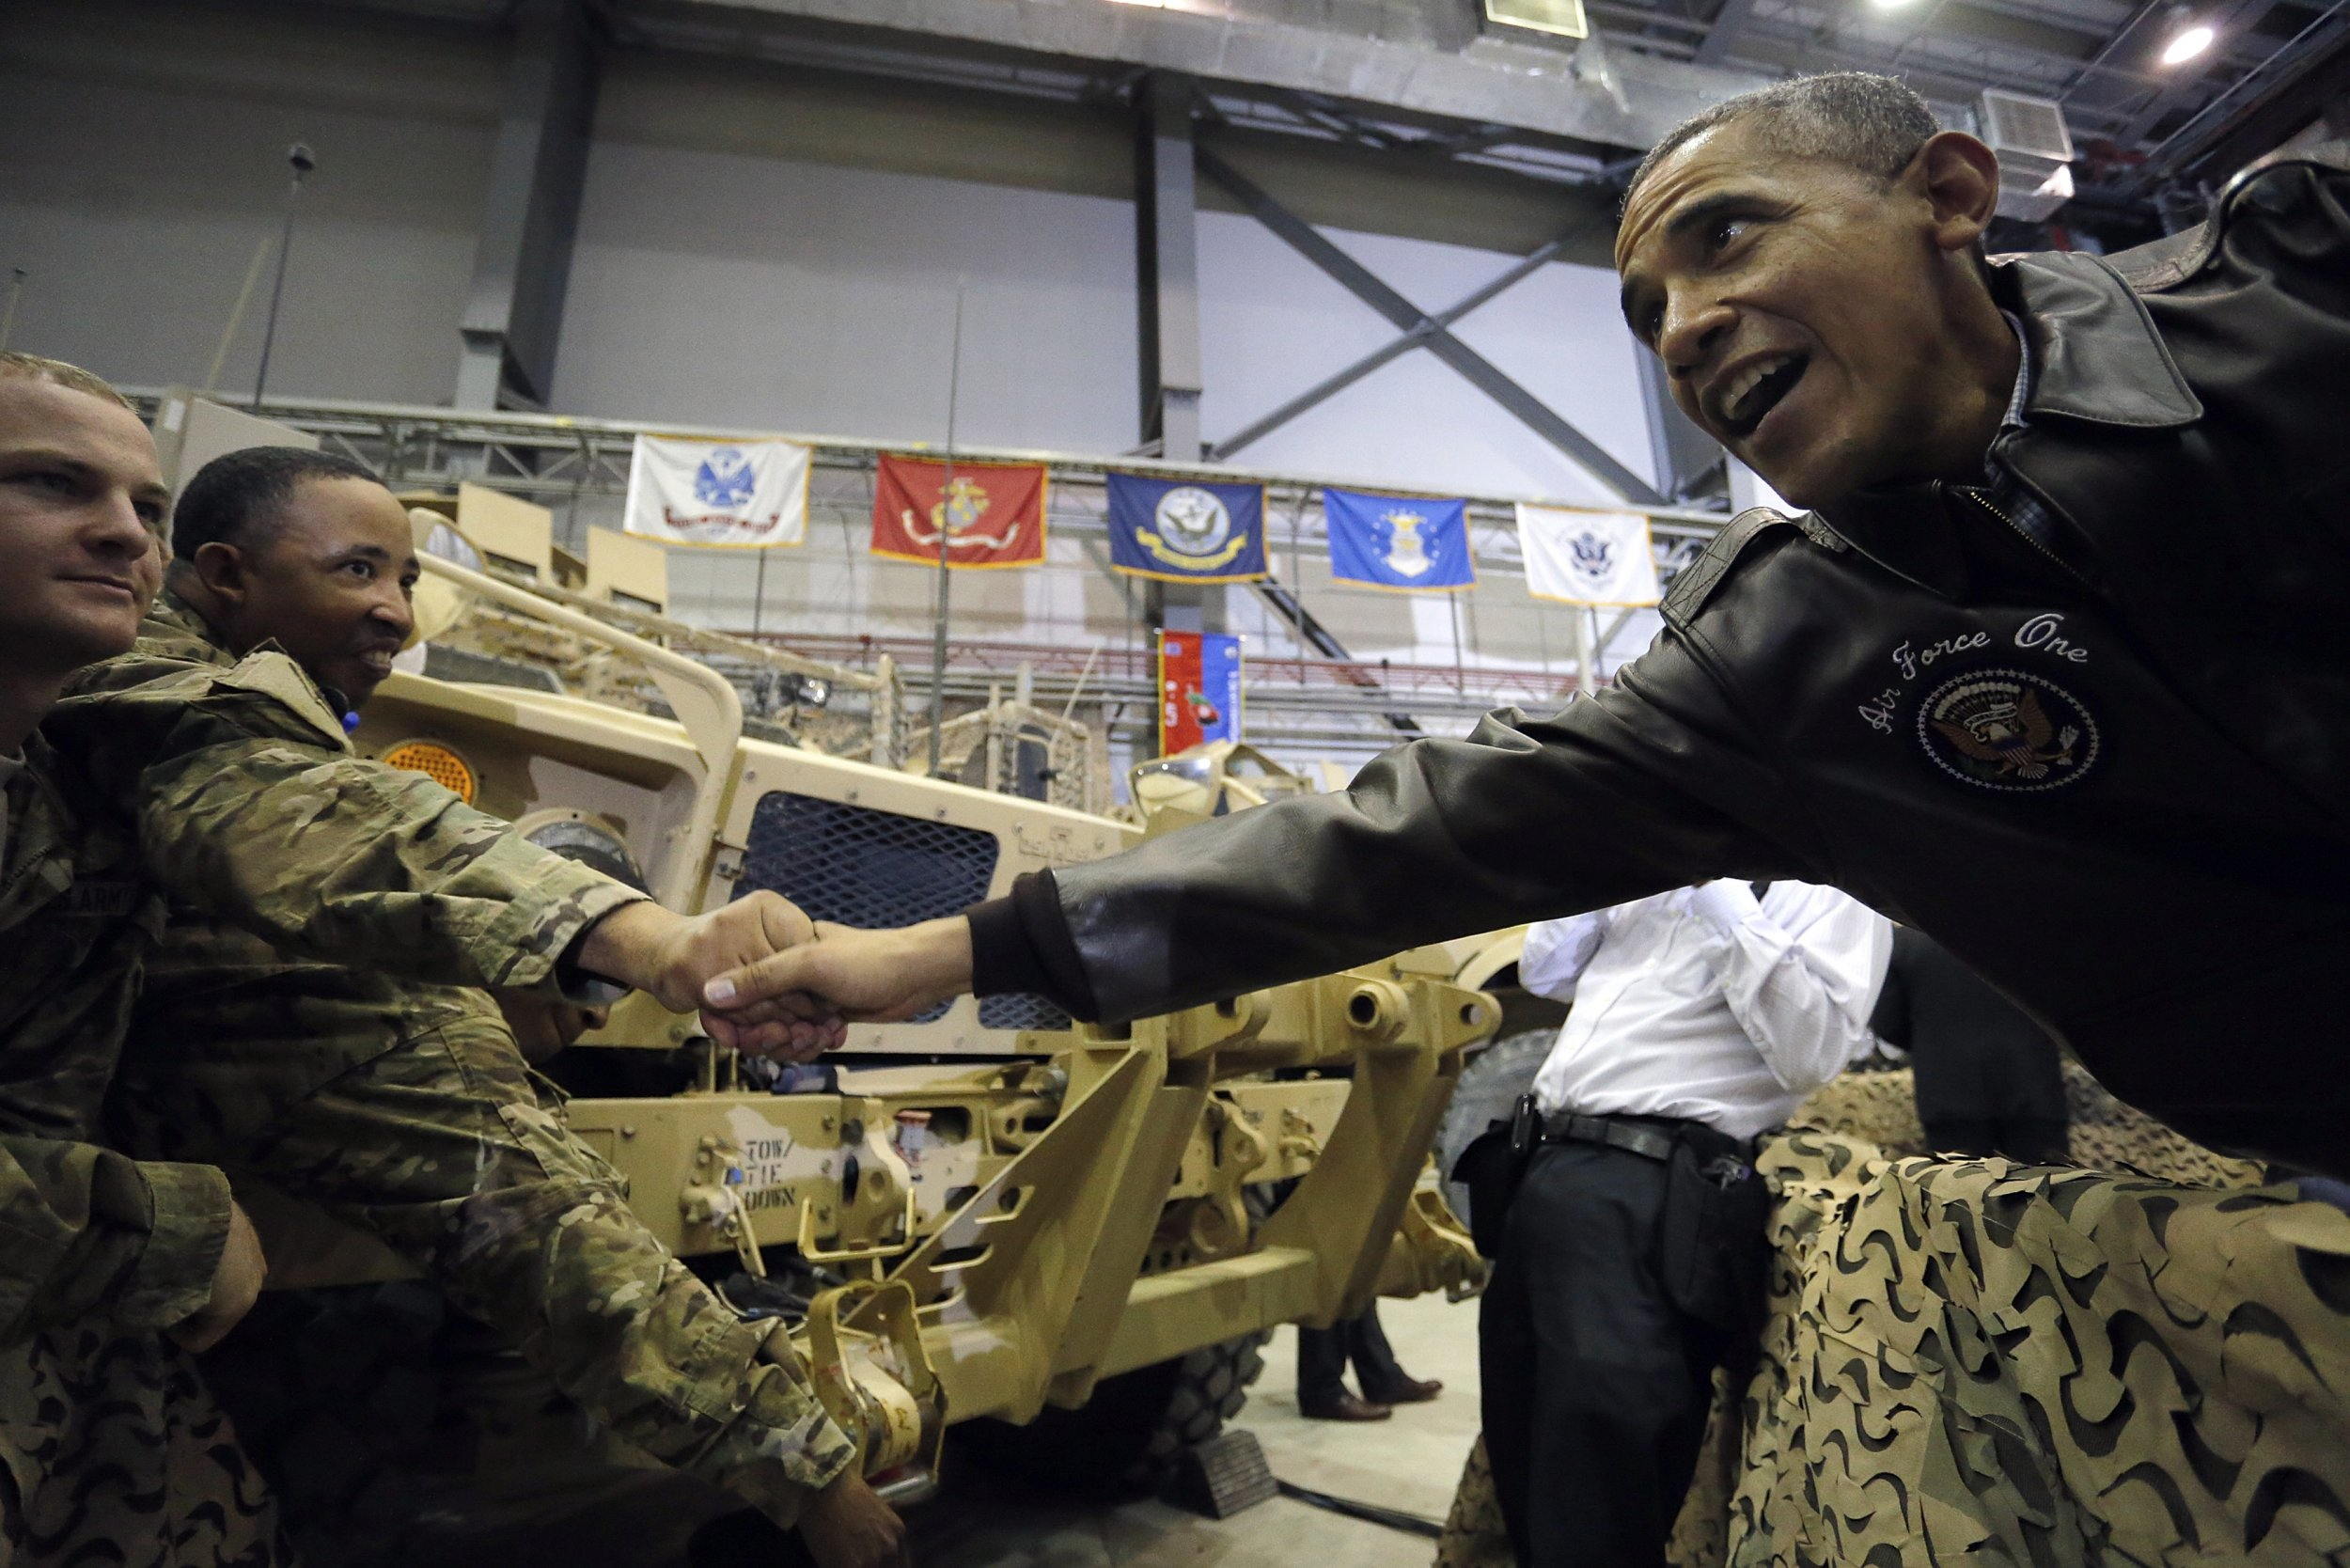 Barack Obama in Afghanistan